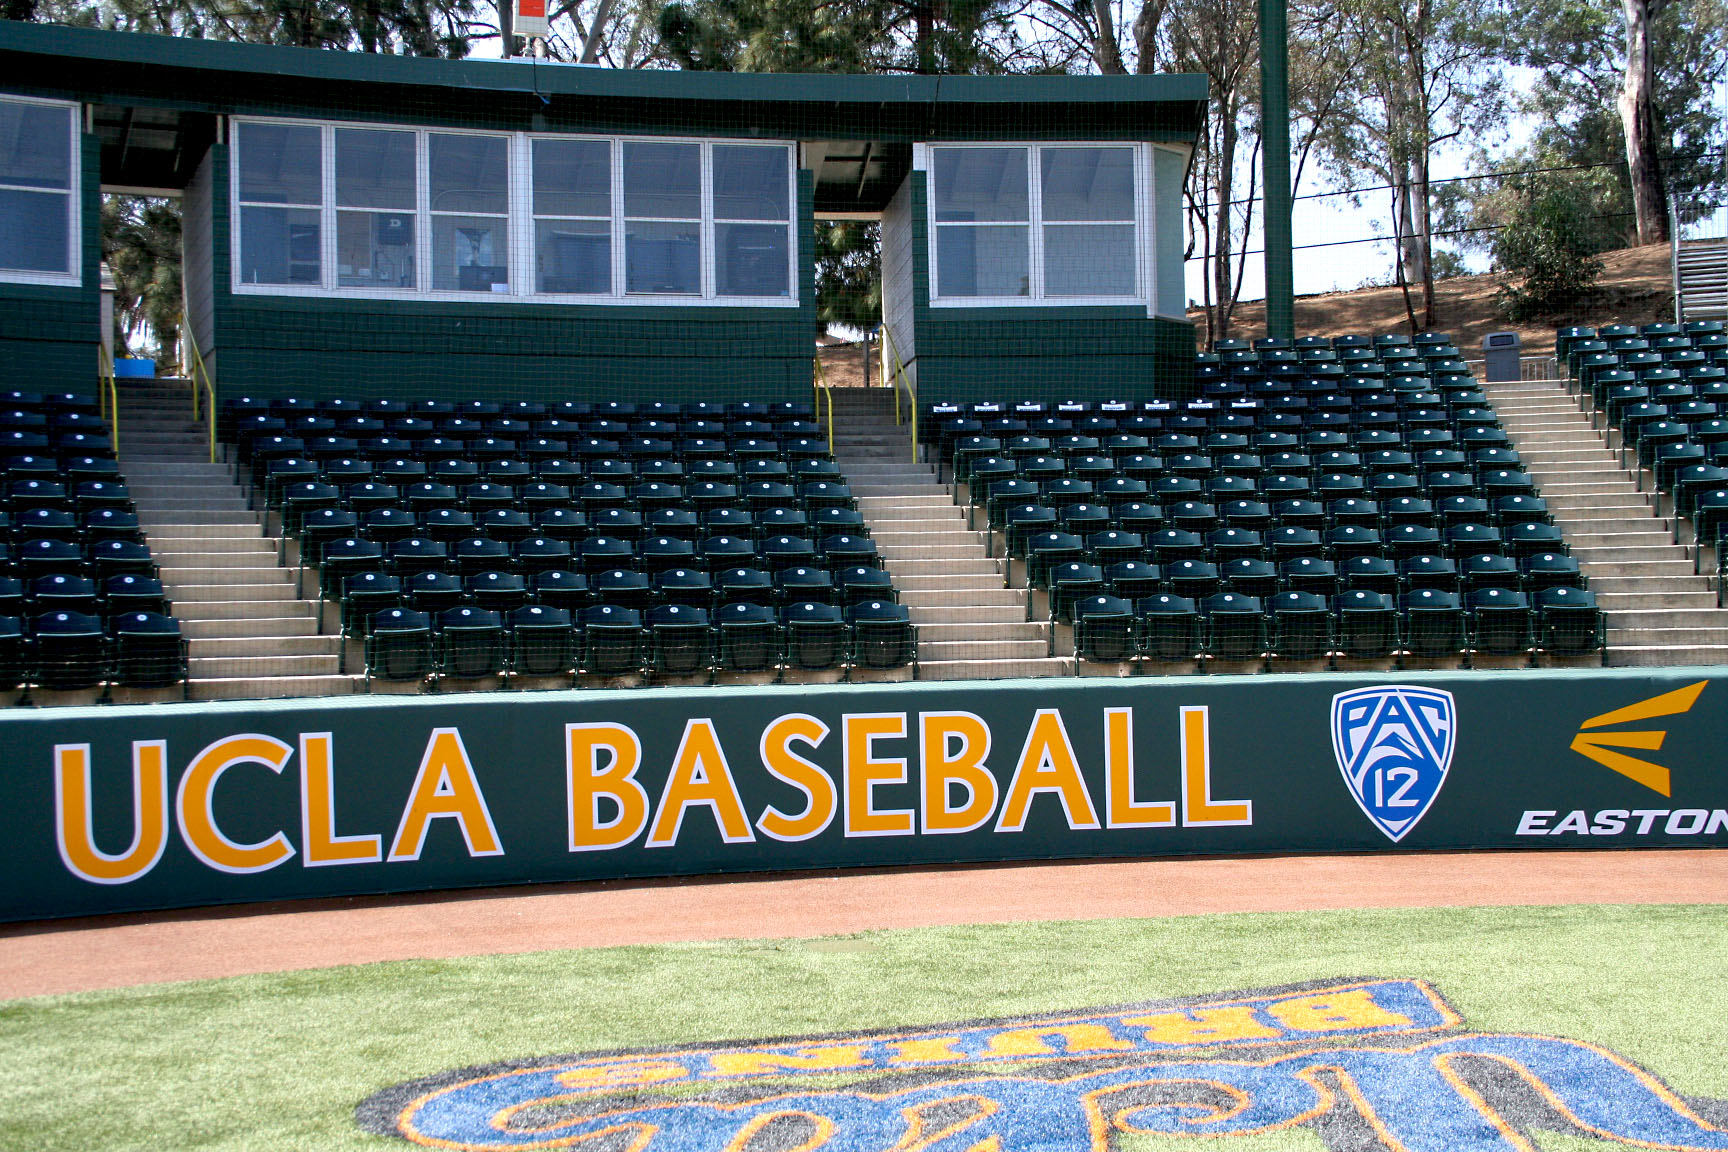 Basketball player at UCLA  Jackie Robinson broke baseball